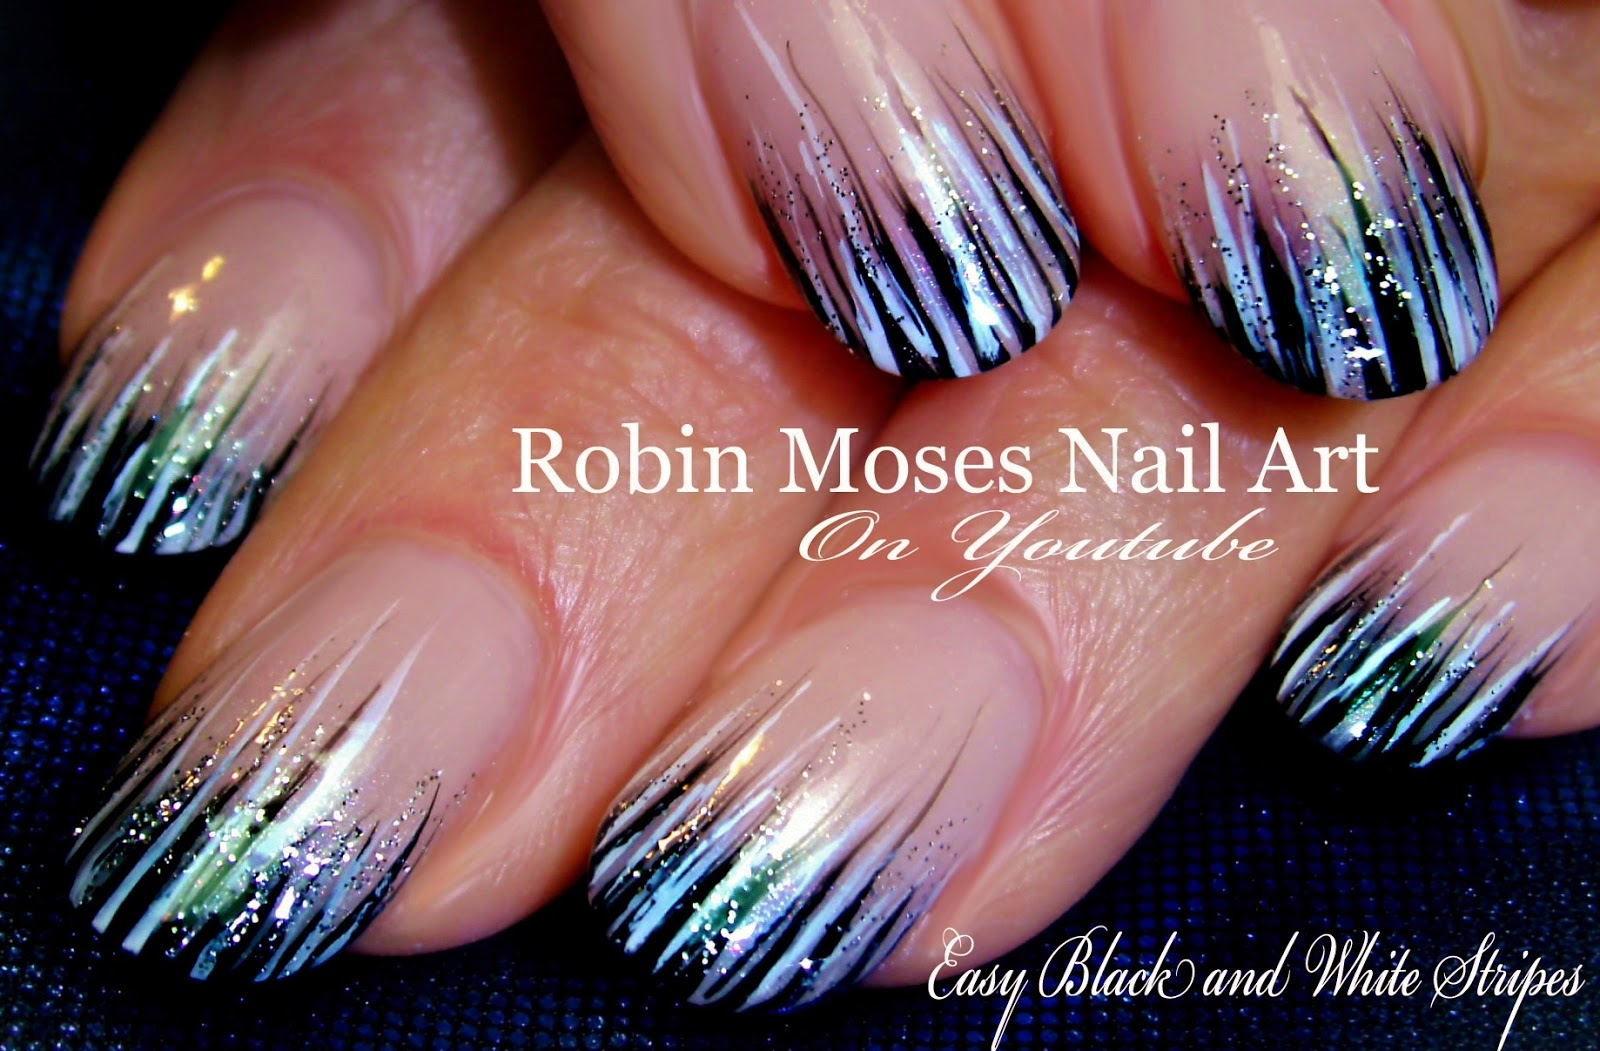 Robin moses nail art striped spring nail art 2016 thats easy easy stripe nails tutorial design diy nail art for beginners here is a nail design to help you learn and master your striping brush on nails prinsesfo Image collections